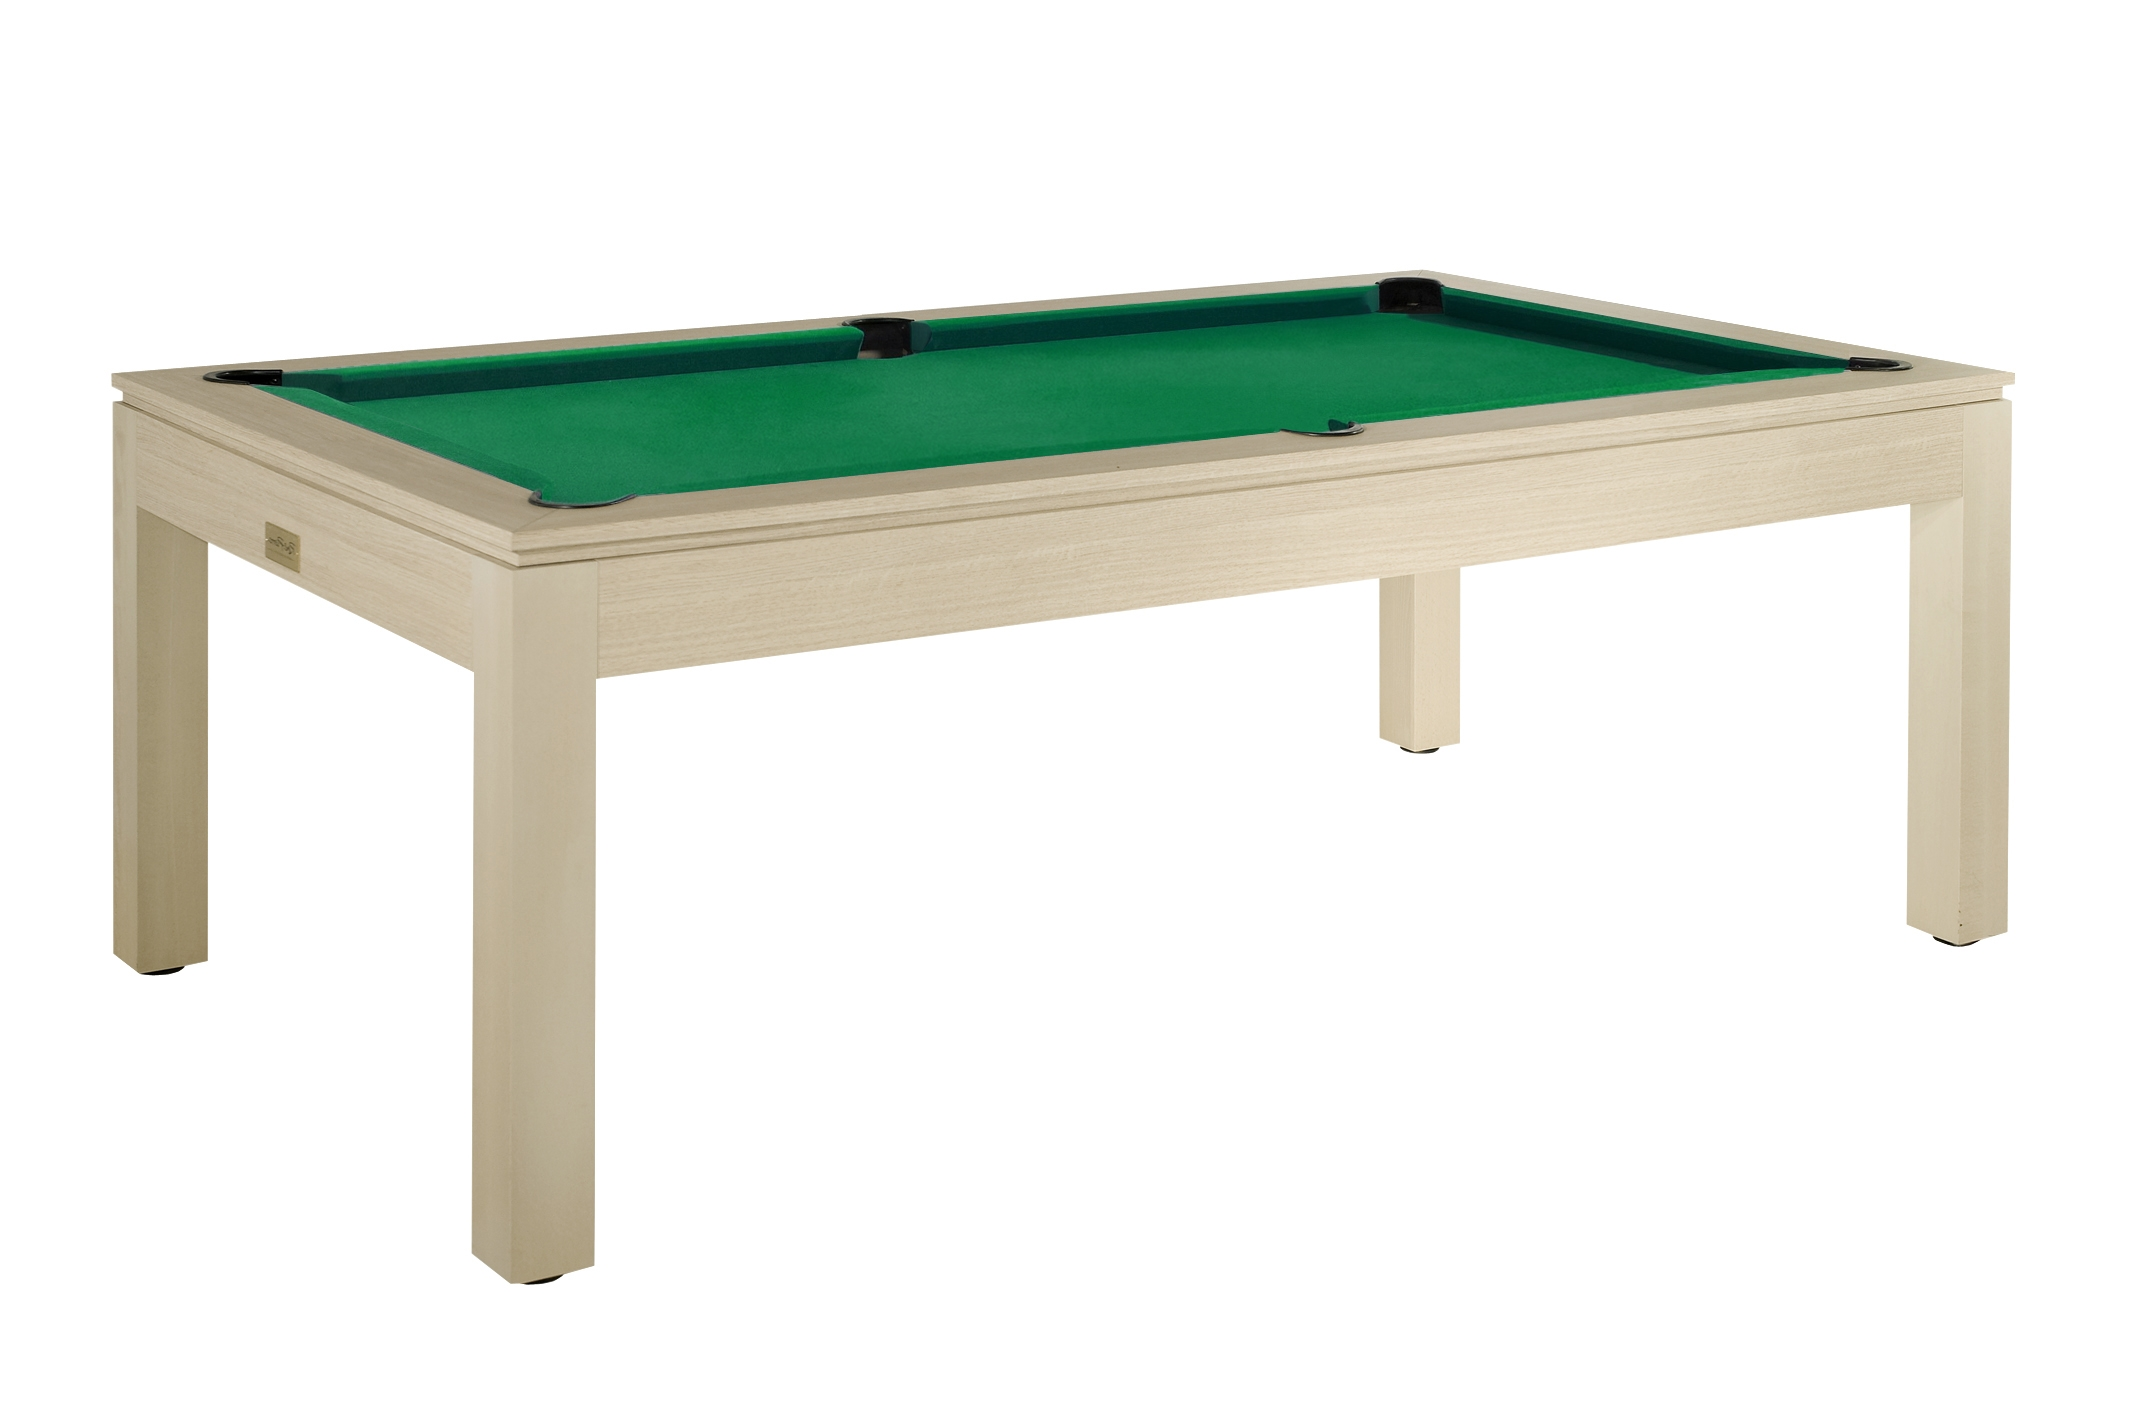 100 billard transformable en table fabrication jeux g ant en bois adul - Billard transformable ...